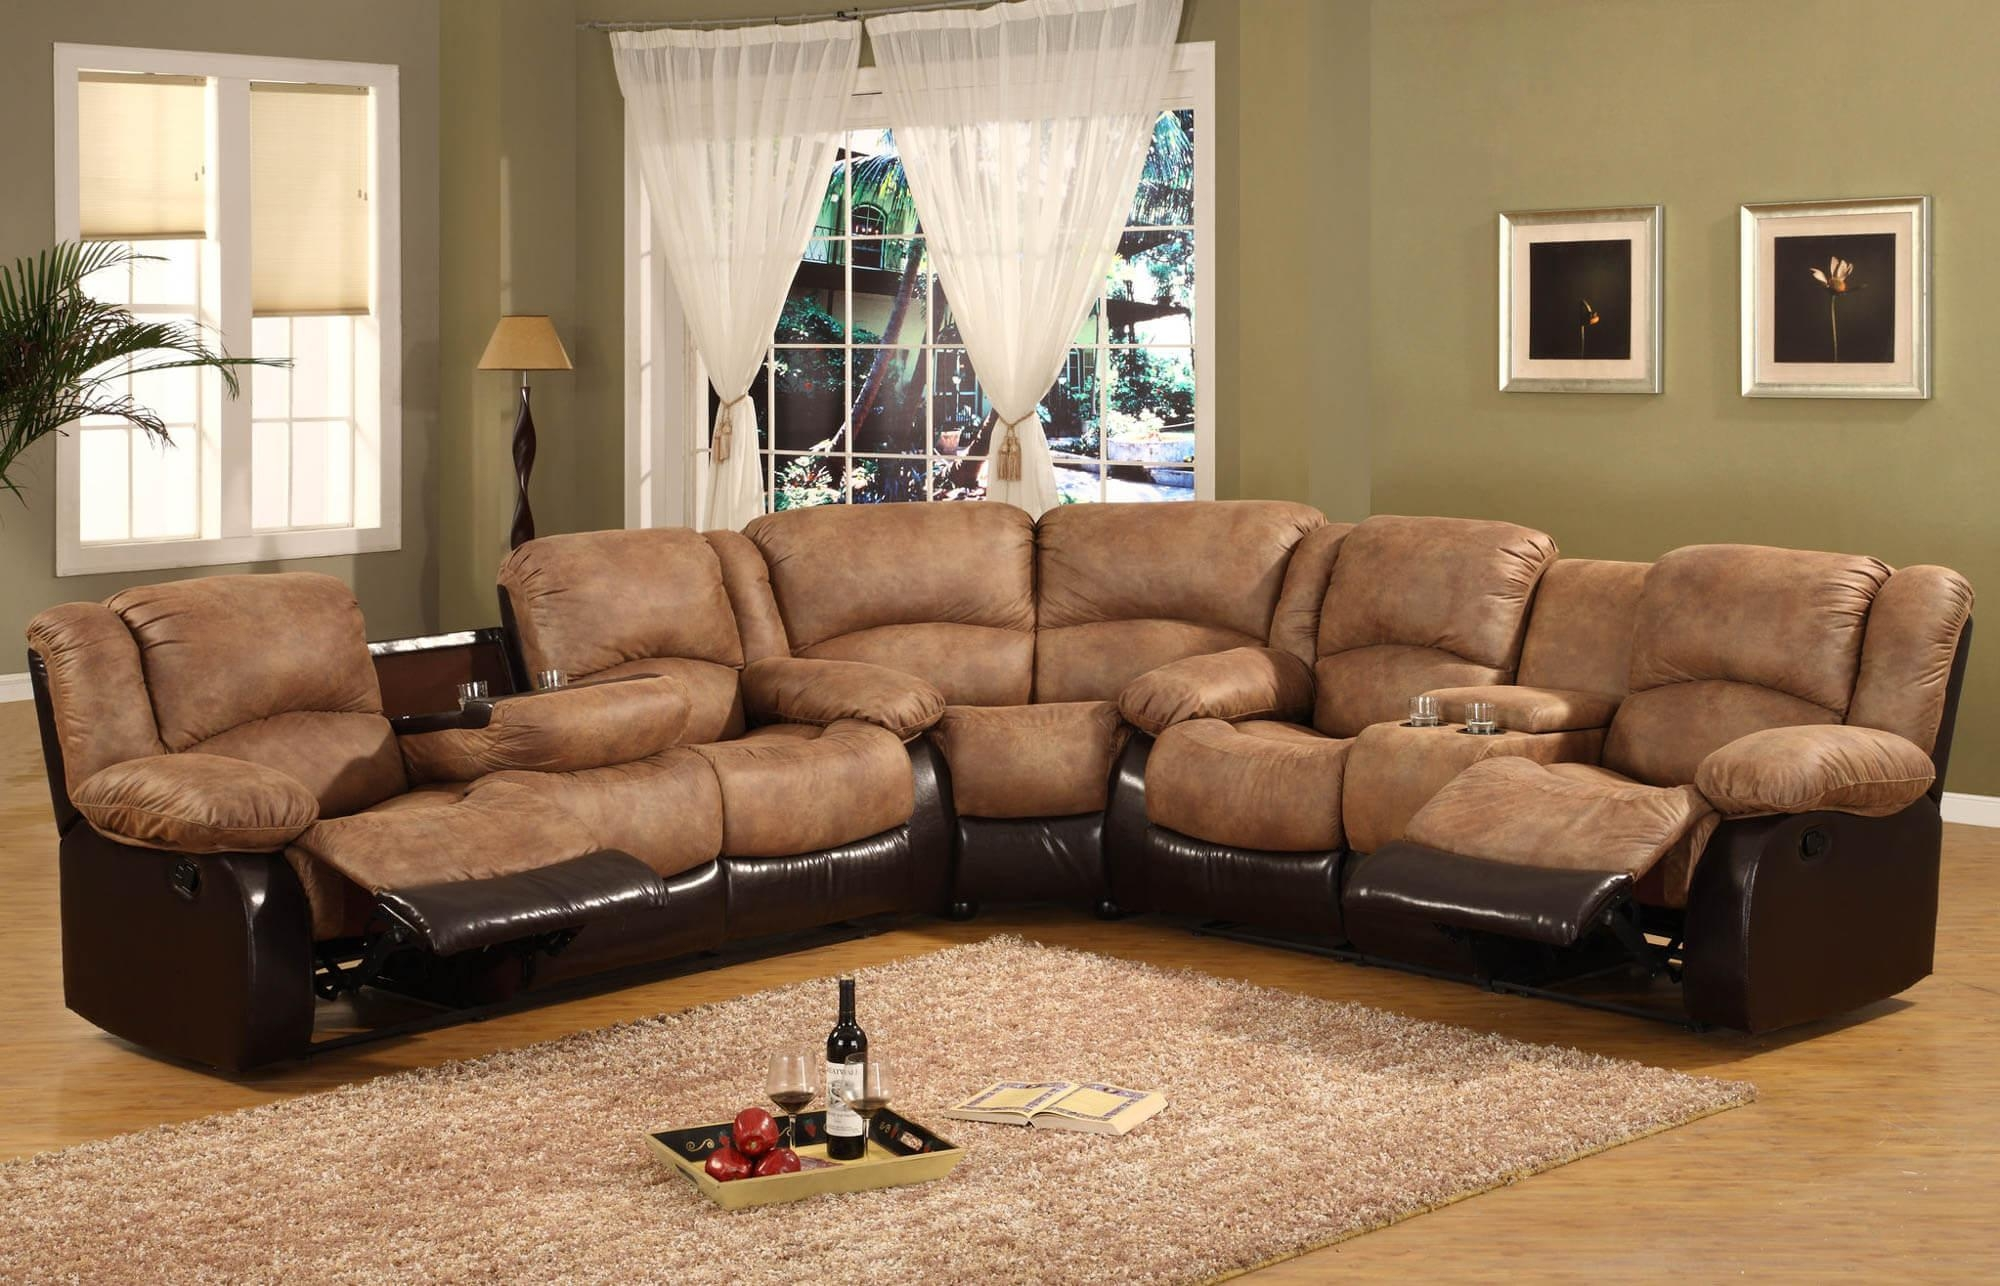 Furniture: Cheapest Sectional Sofas | Clearance Sectional Sofas For Discounted Sectional Sofa (Image 7 of 15)